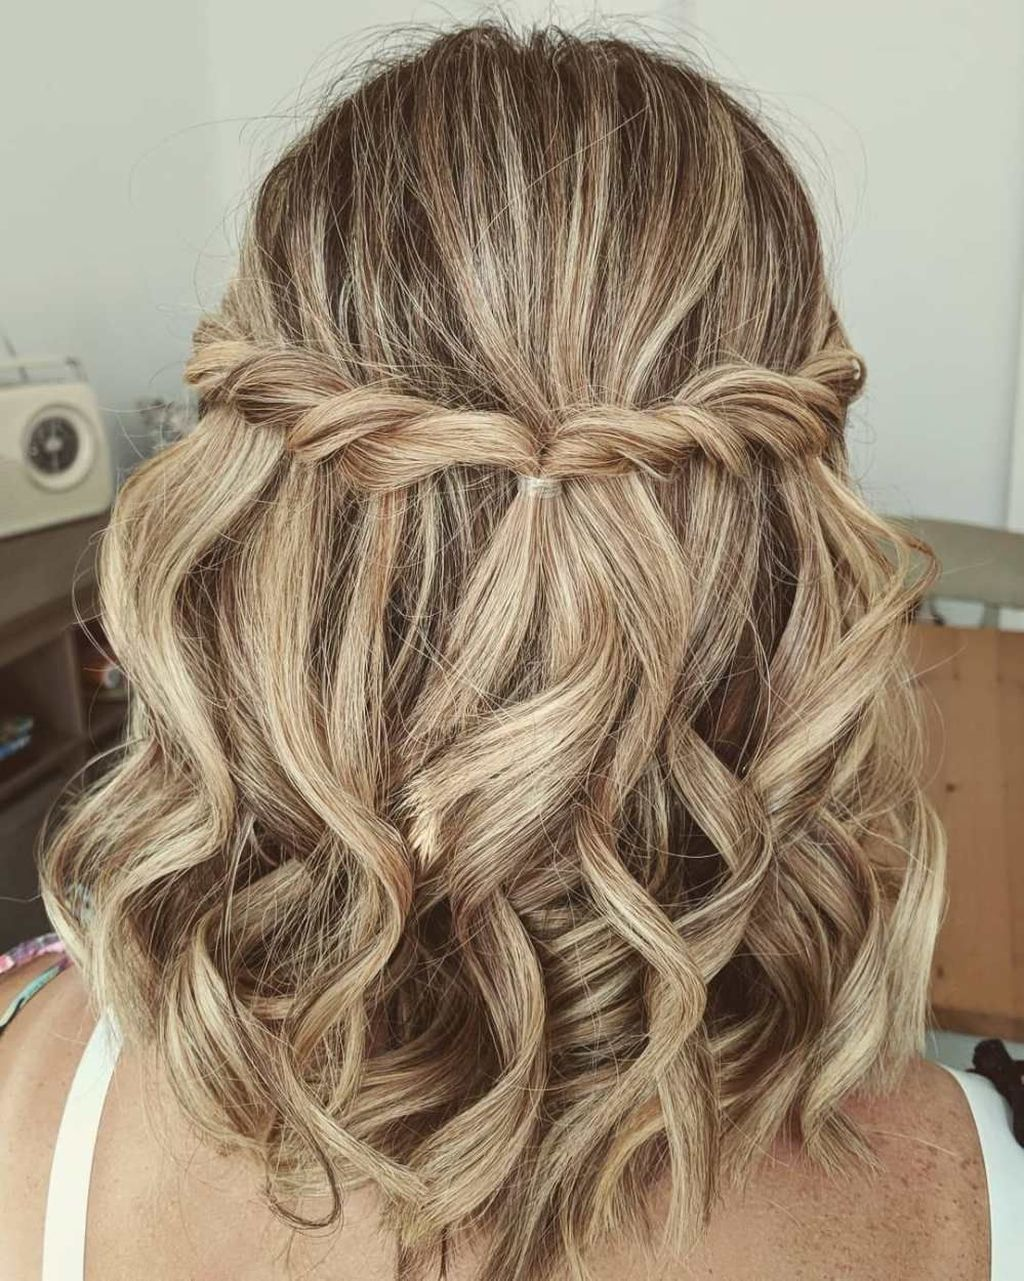 50 Newest Short Formal Hairstyles Ideas For Women Updos For Medium Length Hair Up Dos For Medium Hair Medium Length Hair Styles